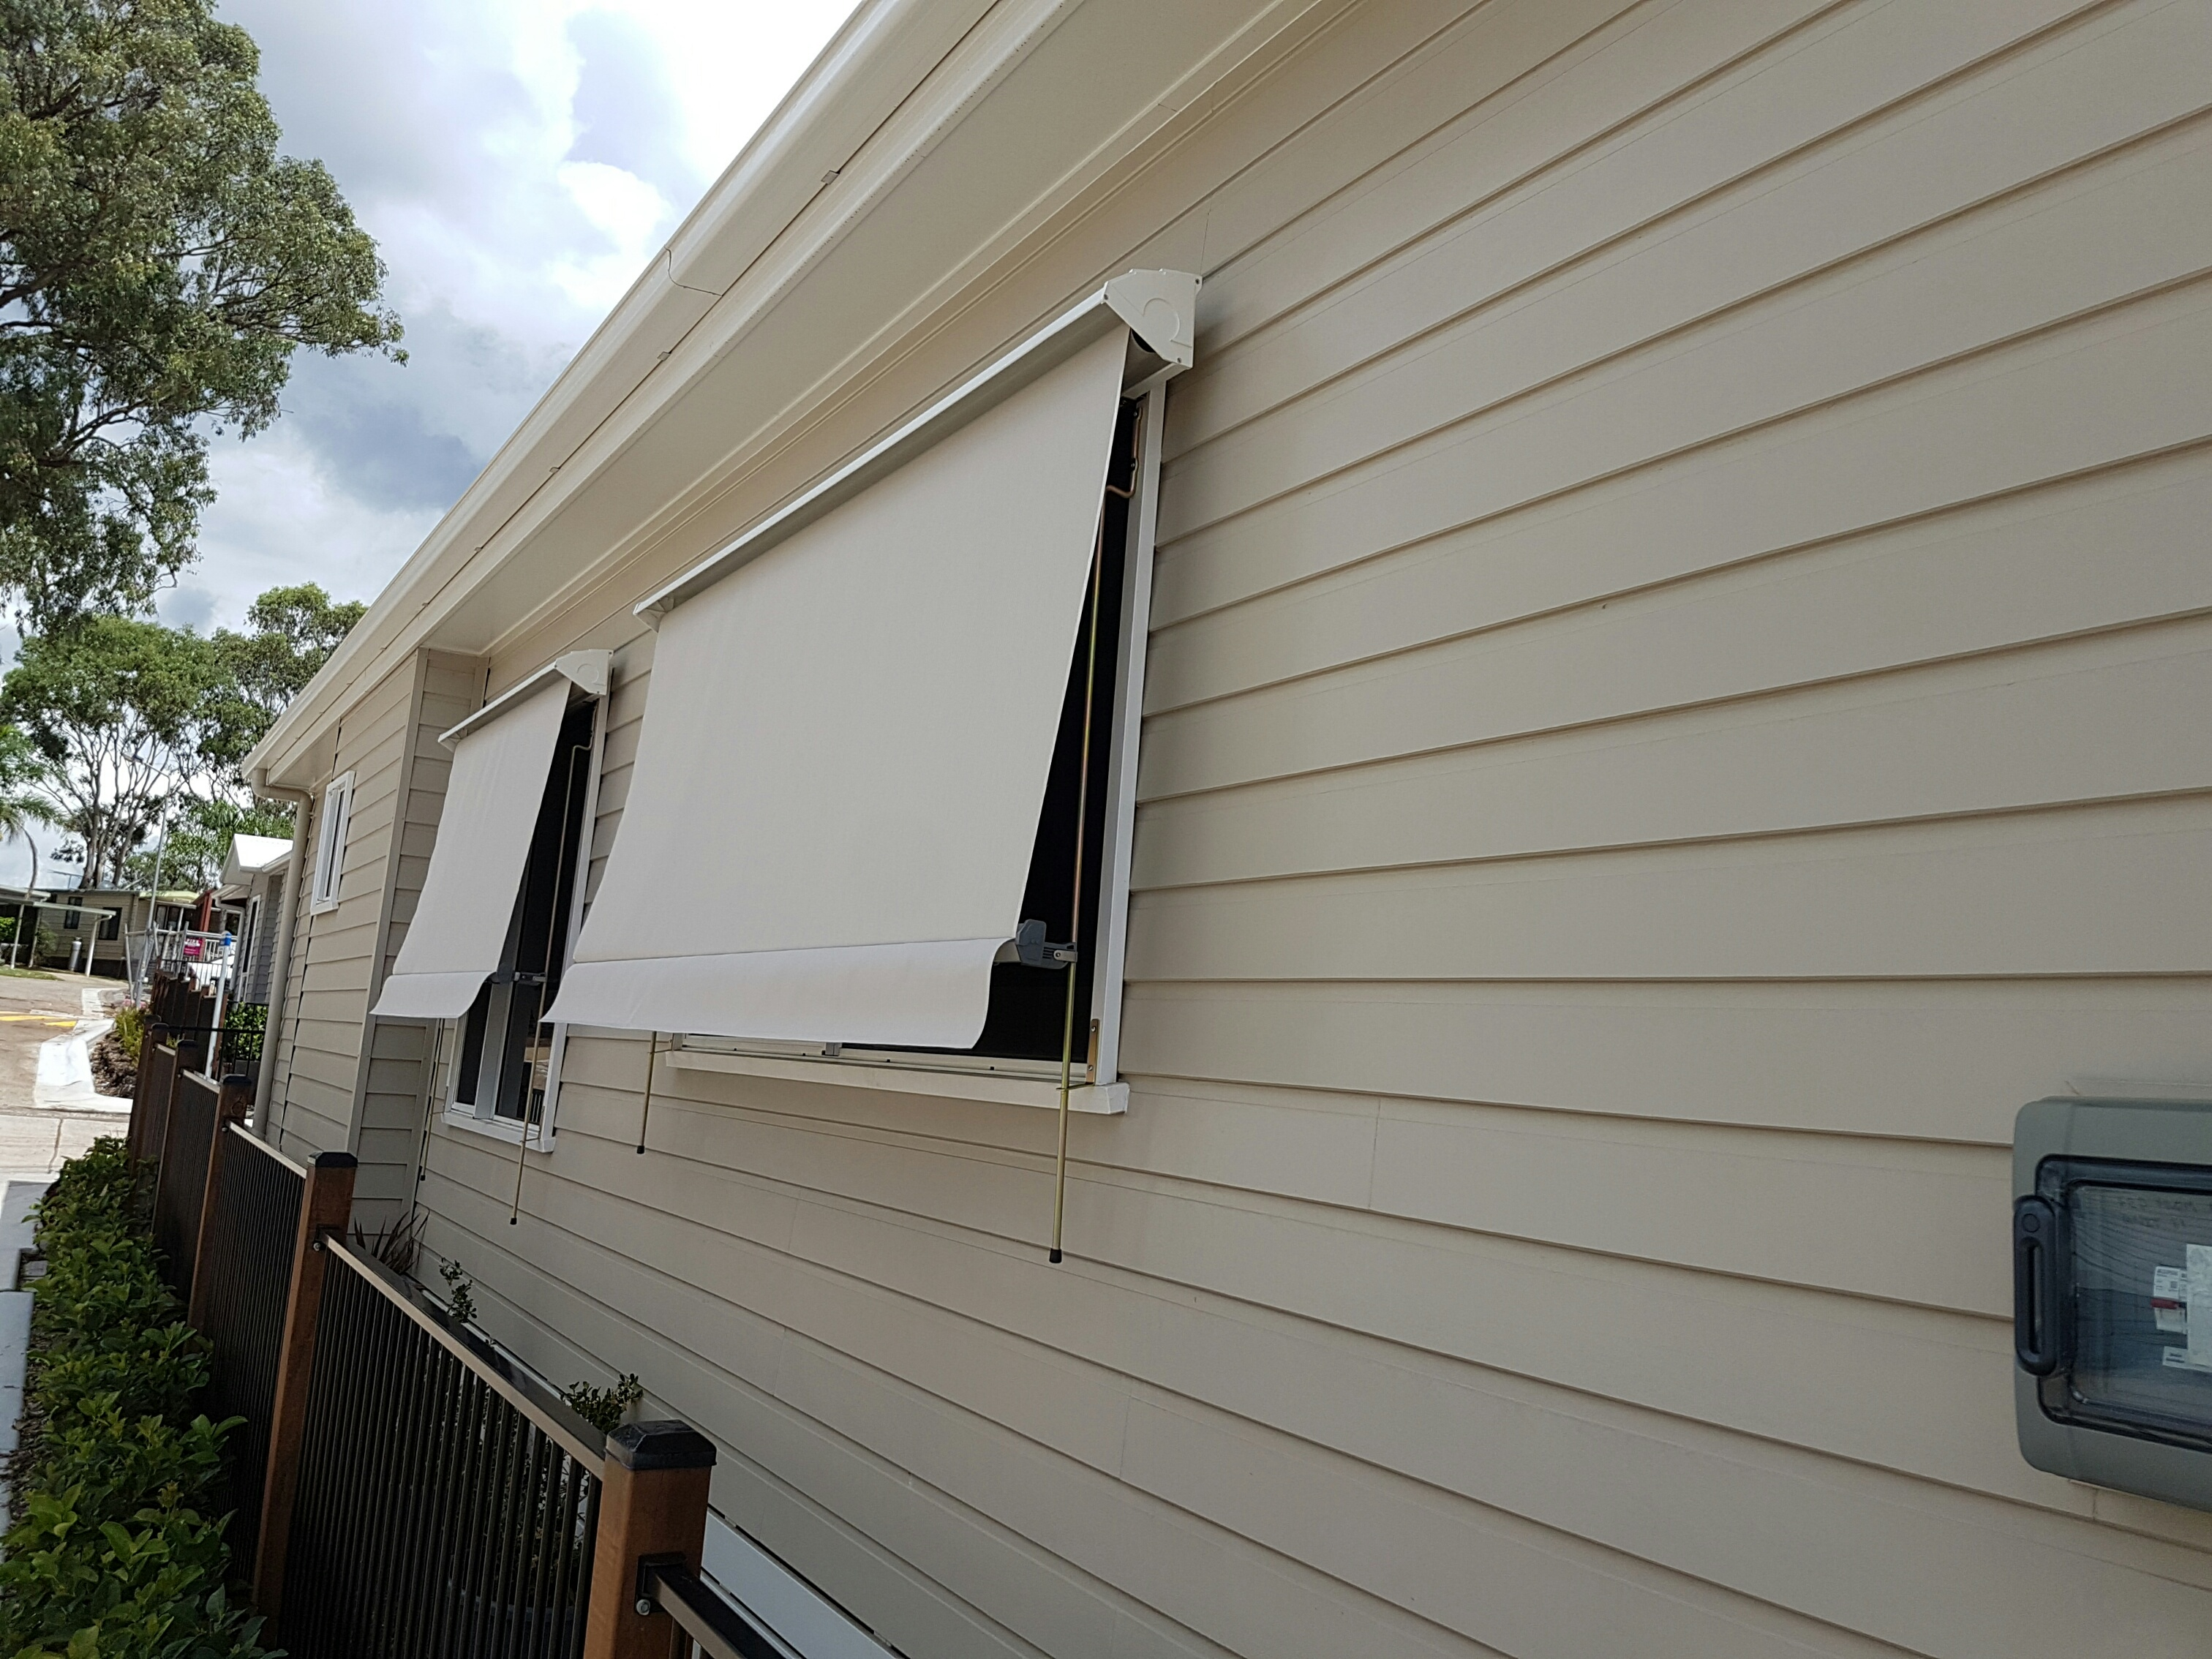 System 2000 Auto Awning with 150mmm arms